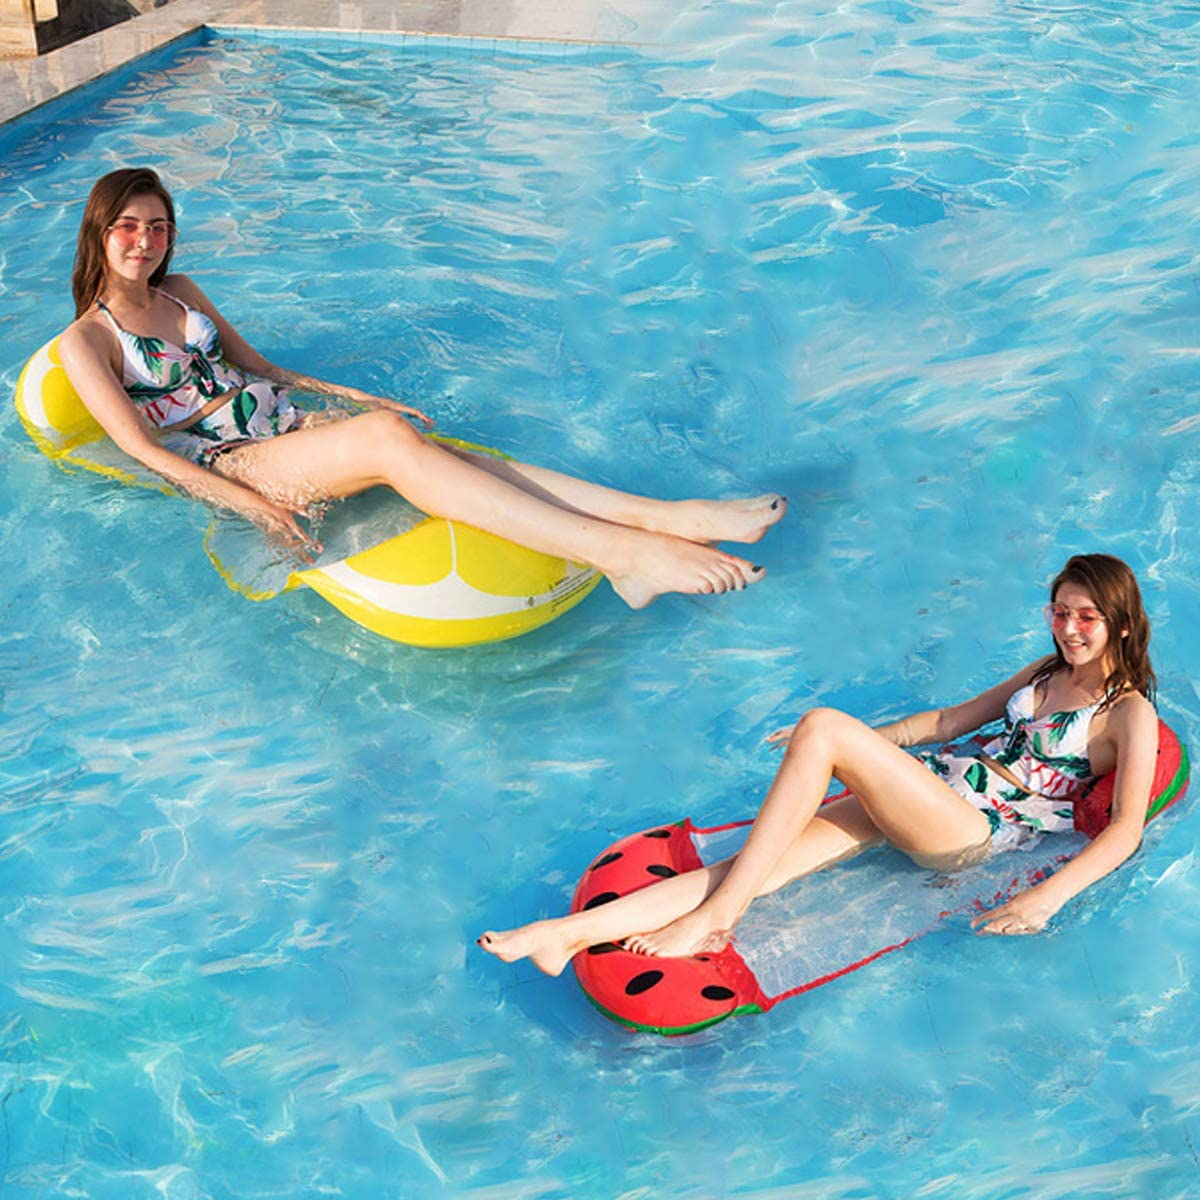 VITHRIII Inflatable Pool Float Water Hammock for Adults 2 Pack Multi-Purpose Portable Swimming Pool Fruit Shape Lounge Chair Comfortable Floating Lounger